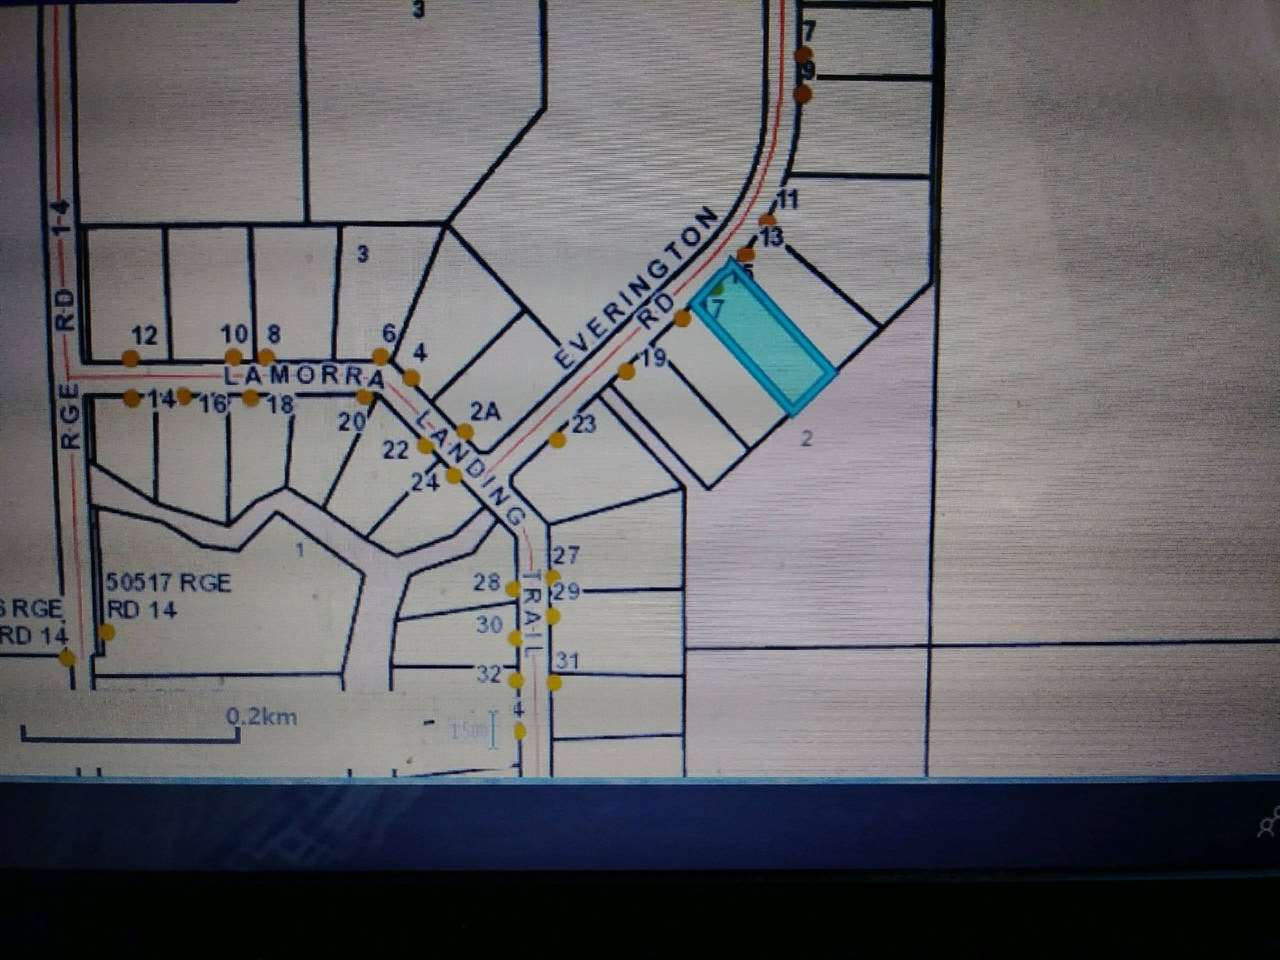 Property for Sale, MLS® # E4155710